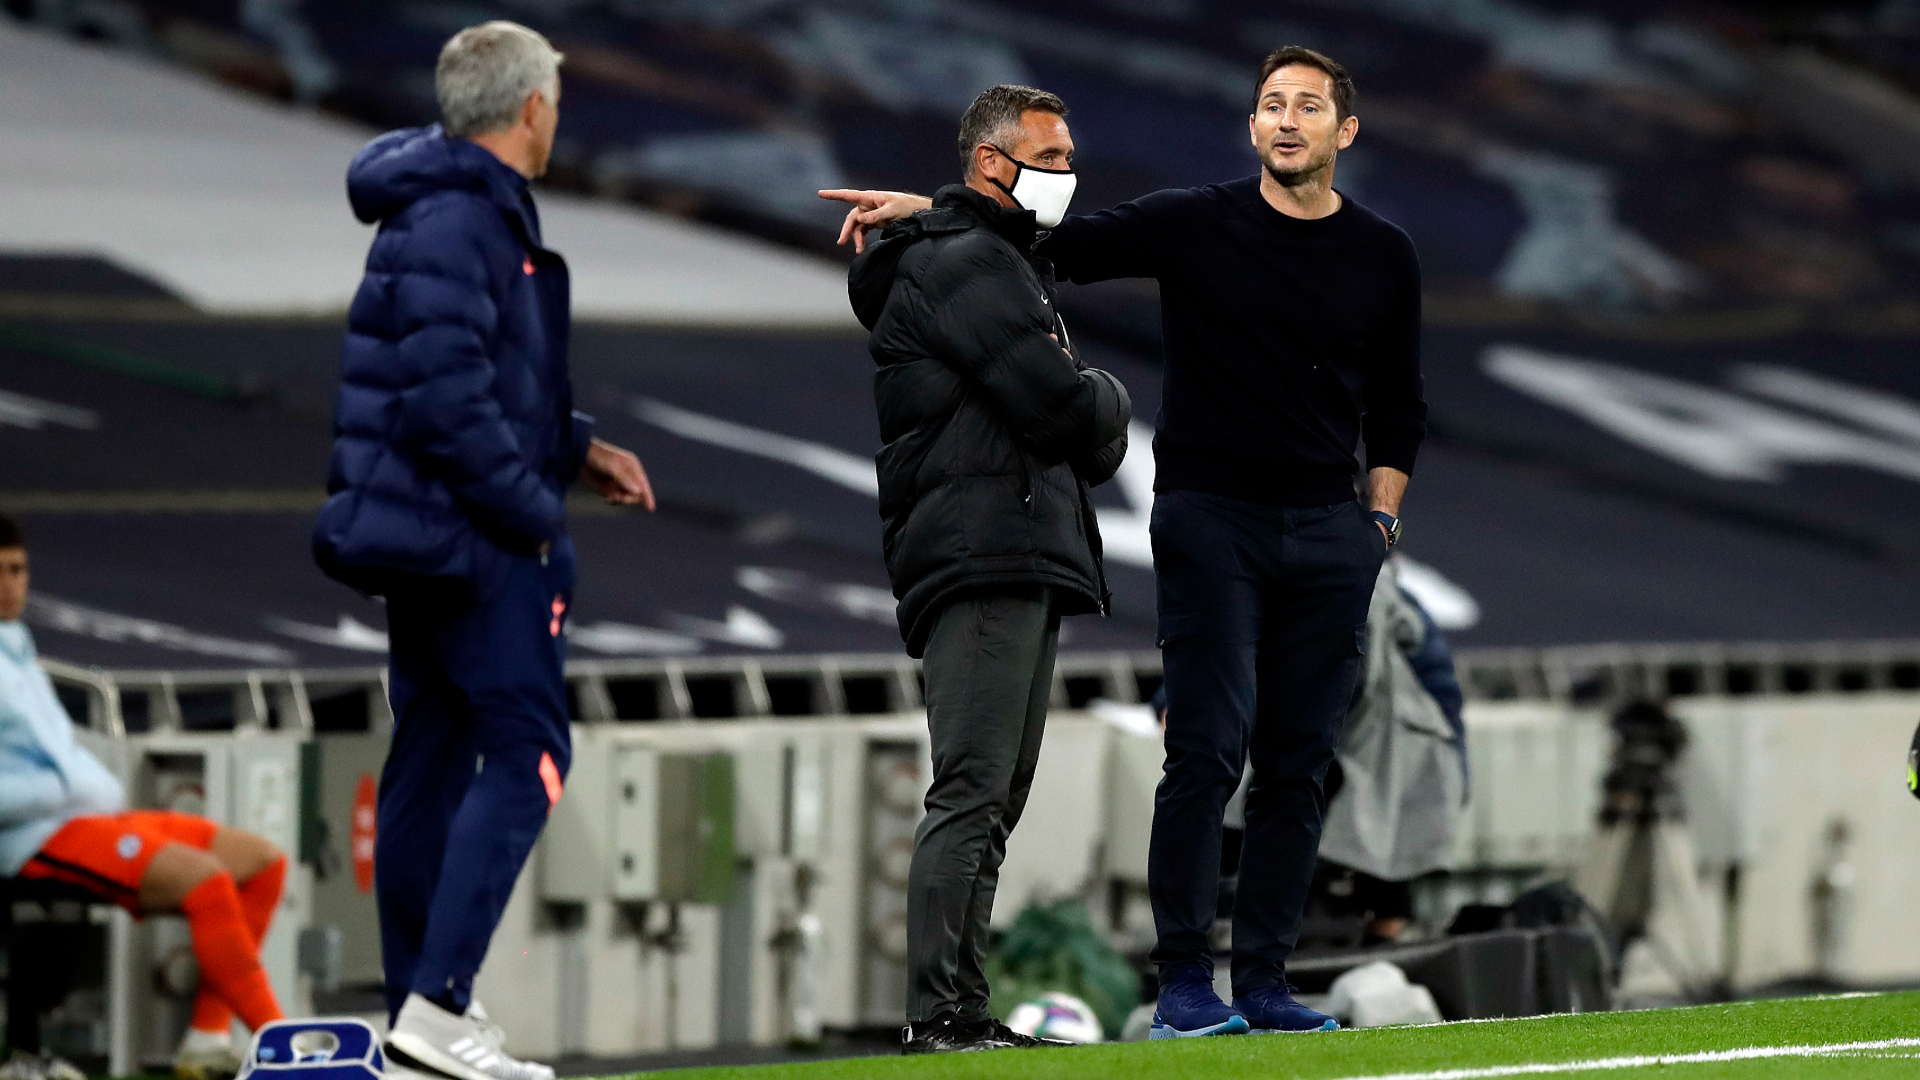 Tensions will be high as Mourinho and Lampard face off in a high stakes clash at the top of the English Premier League standings